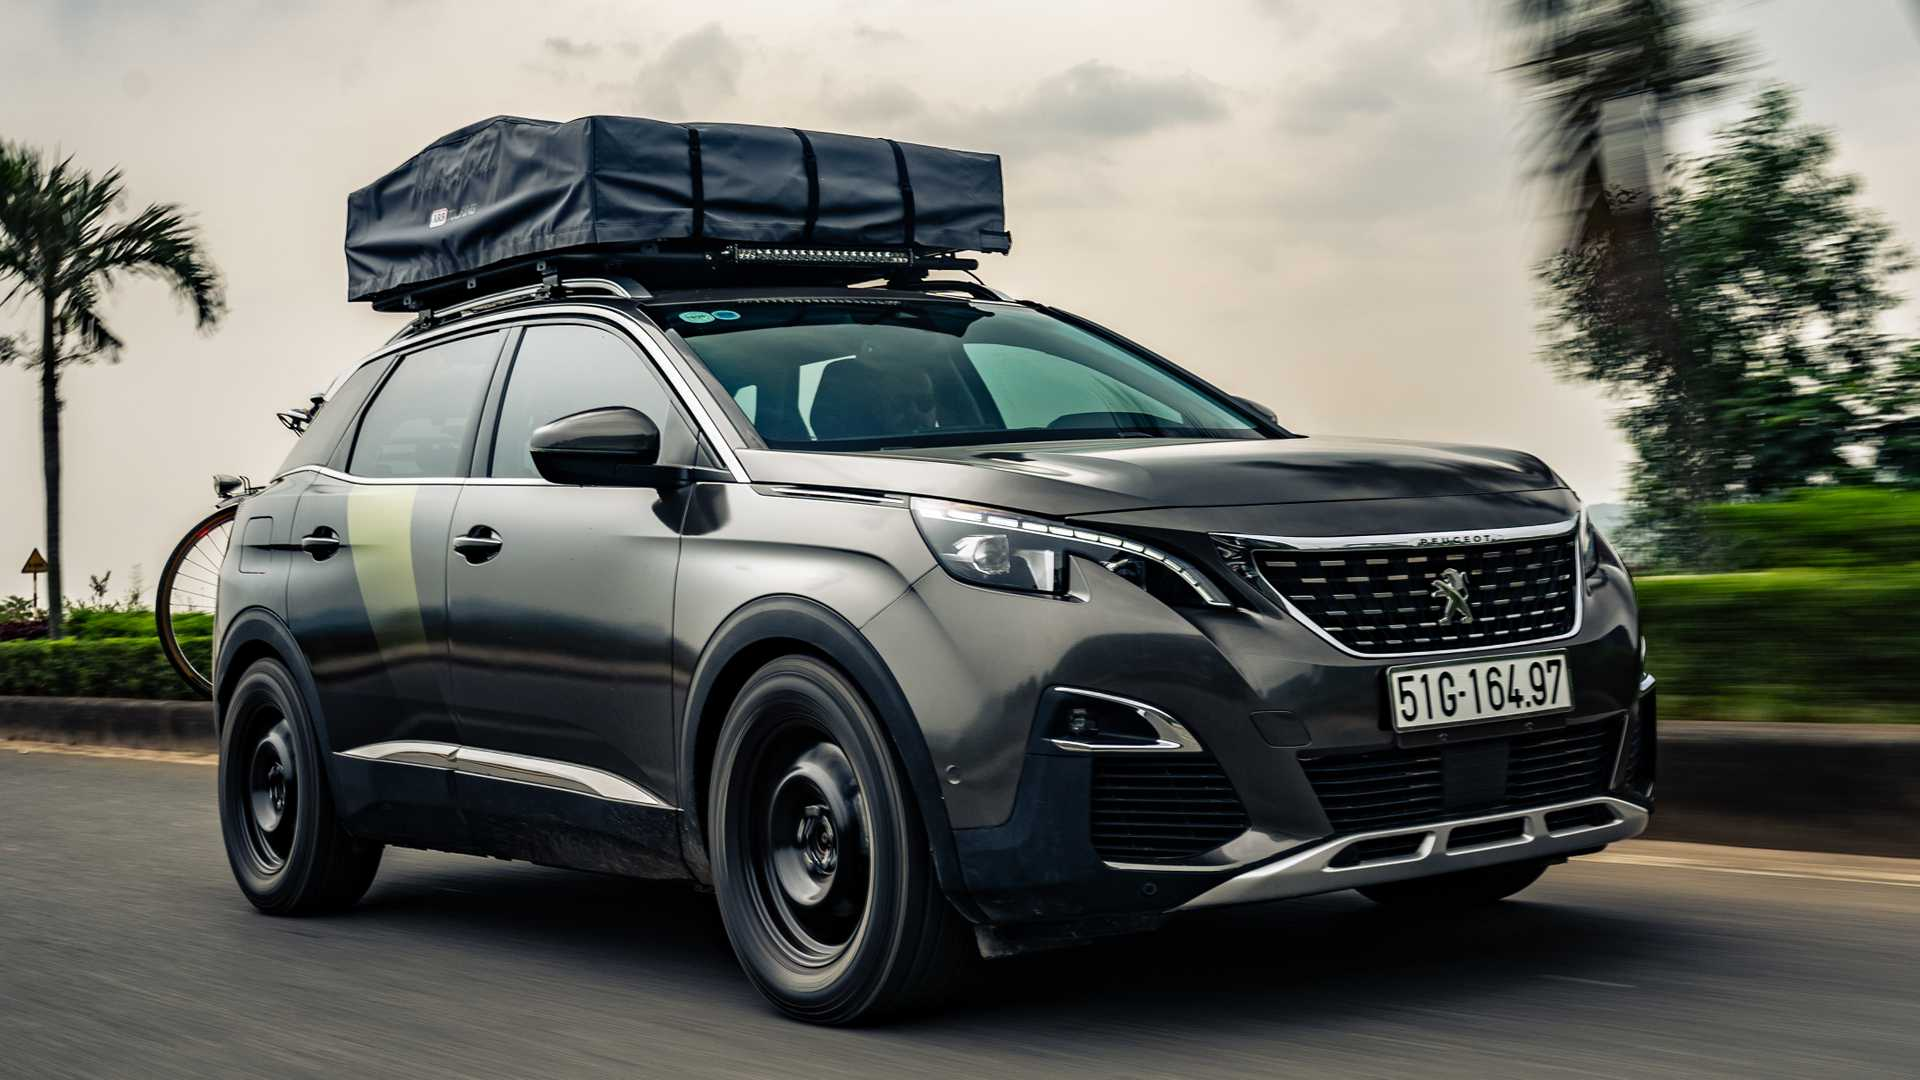 Peugeot Suv 3008 >> Peugeot 3008 Concept Wants To Be An Adventurous Suv